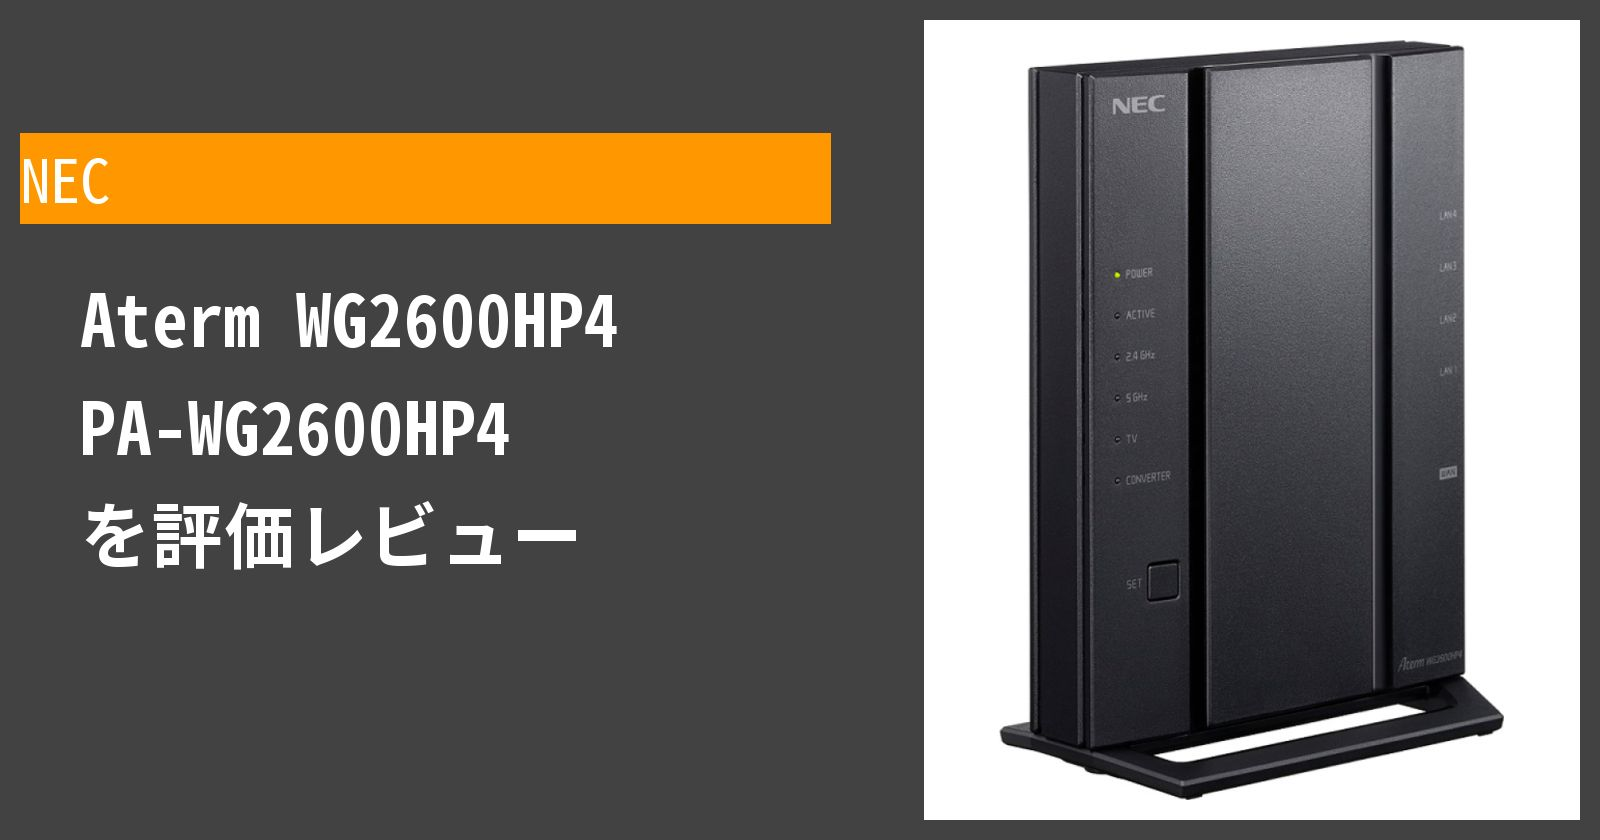 Aterm WG2600HP4 PA-WG2600HP4を徹底評価